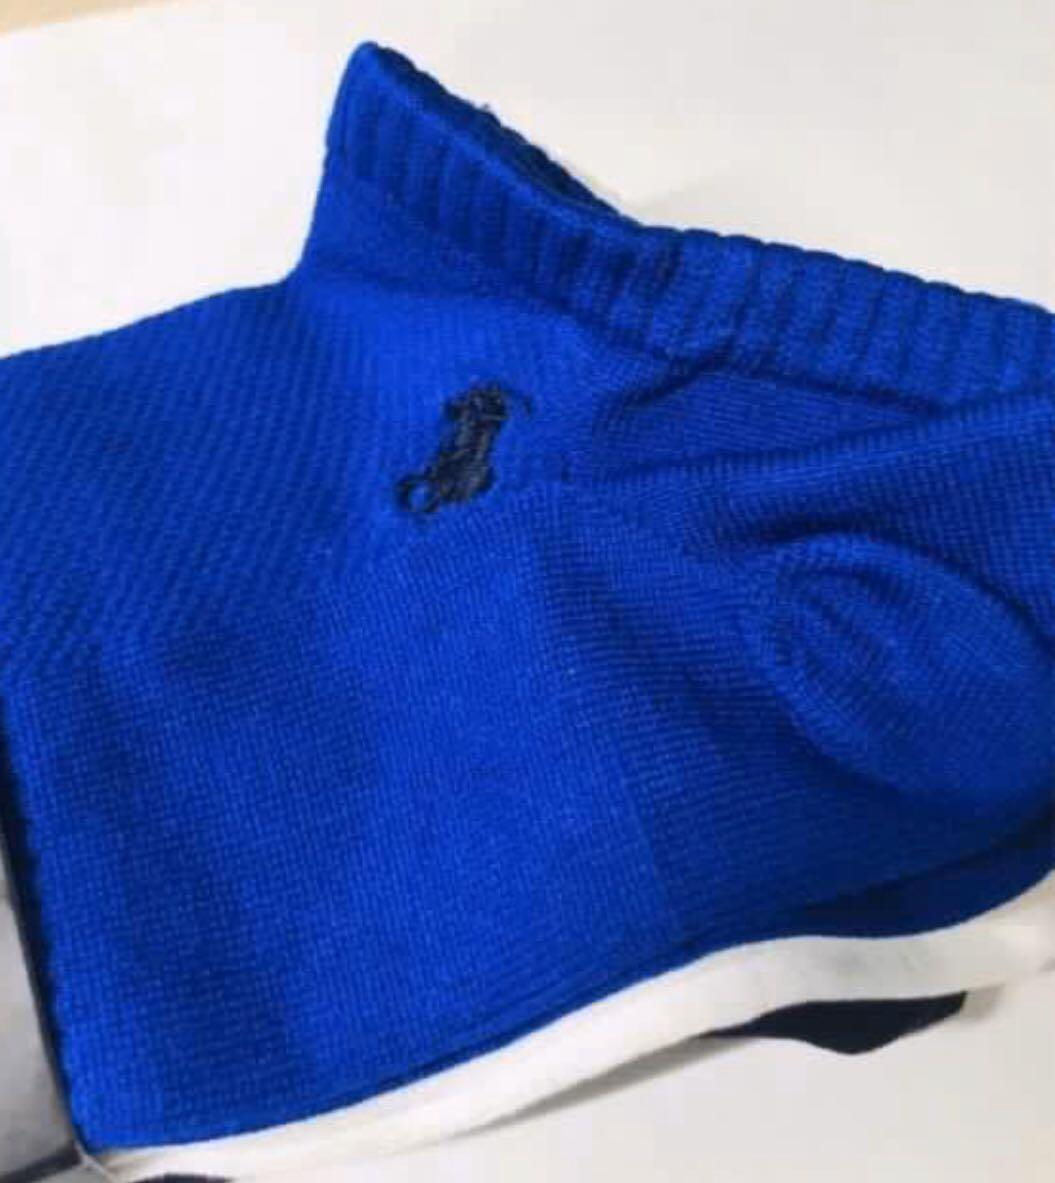 Ralph Lauren. RL. Polo. Technical Sport. Men's Low Cut Socks. Ultra Light and Smooth. PackOf3. AUTHENTIC